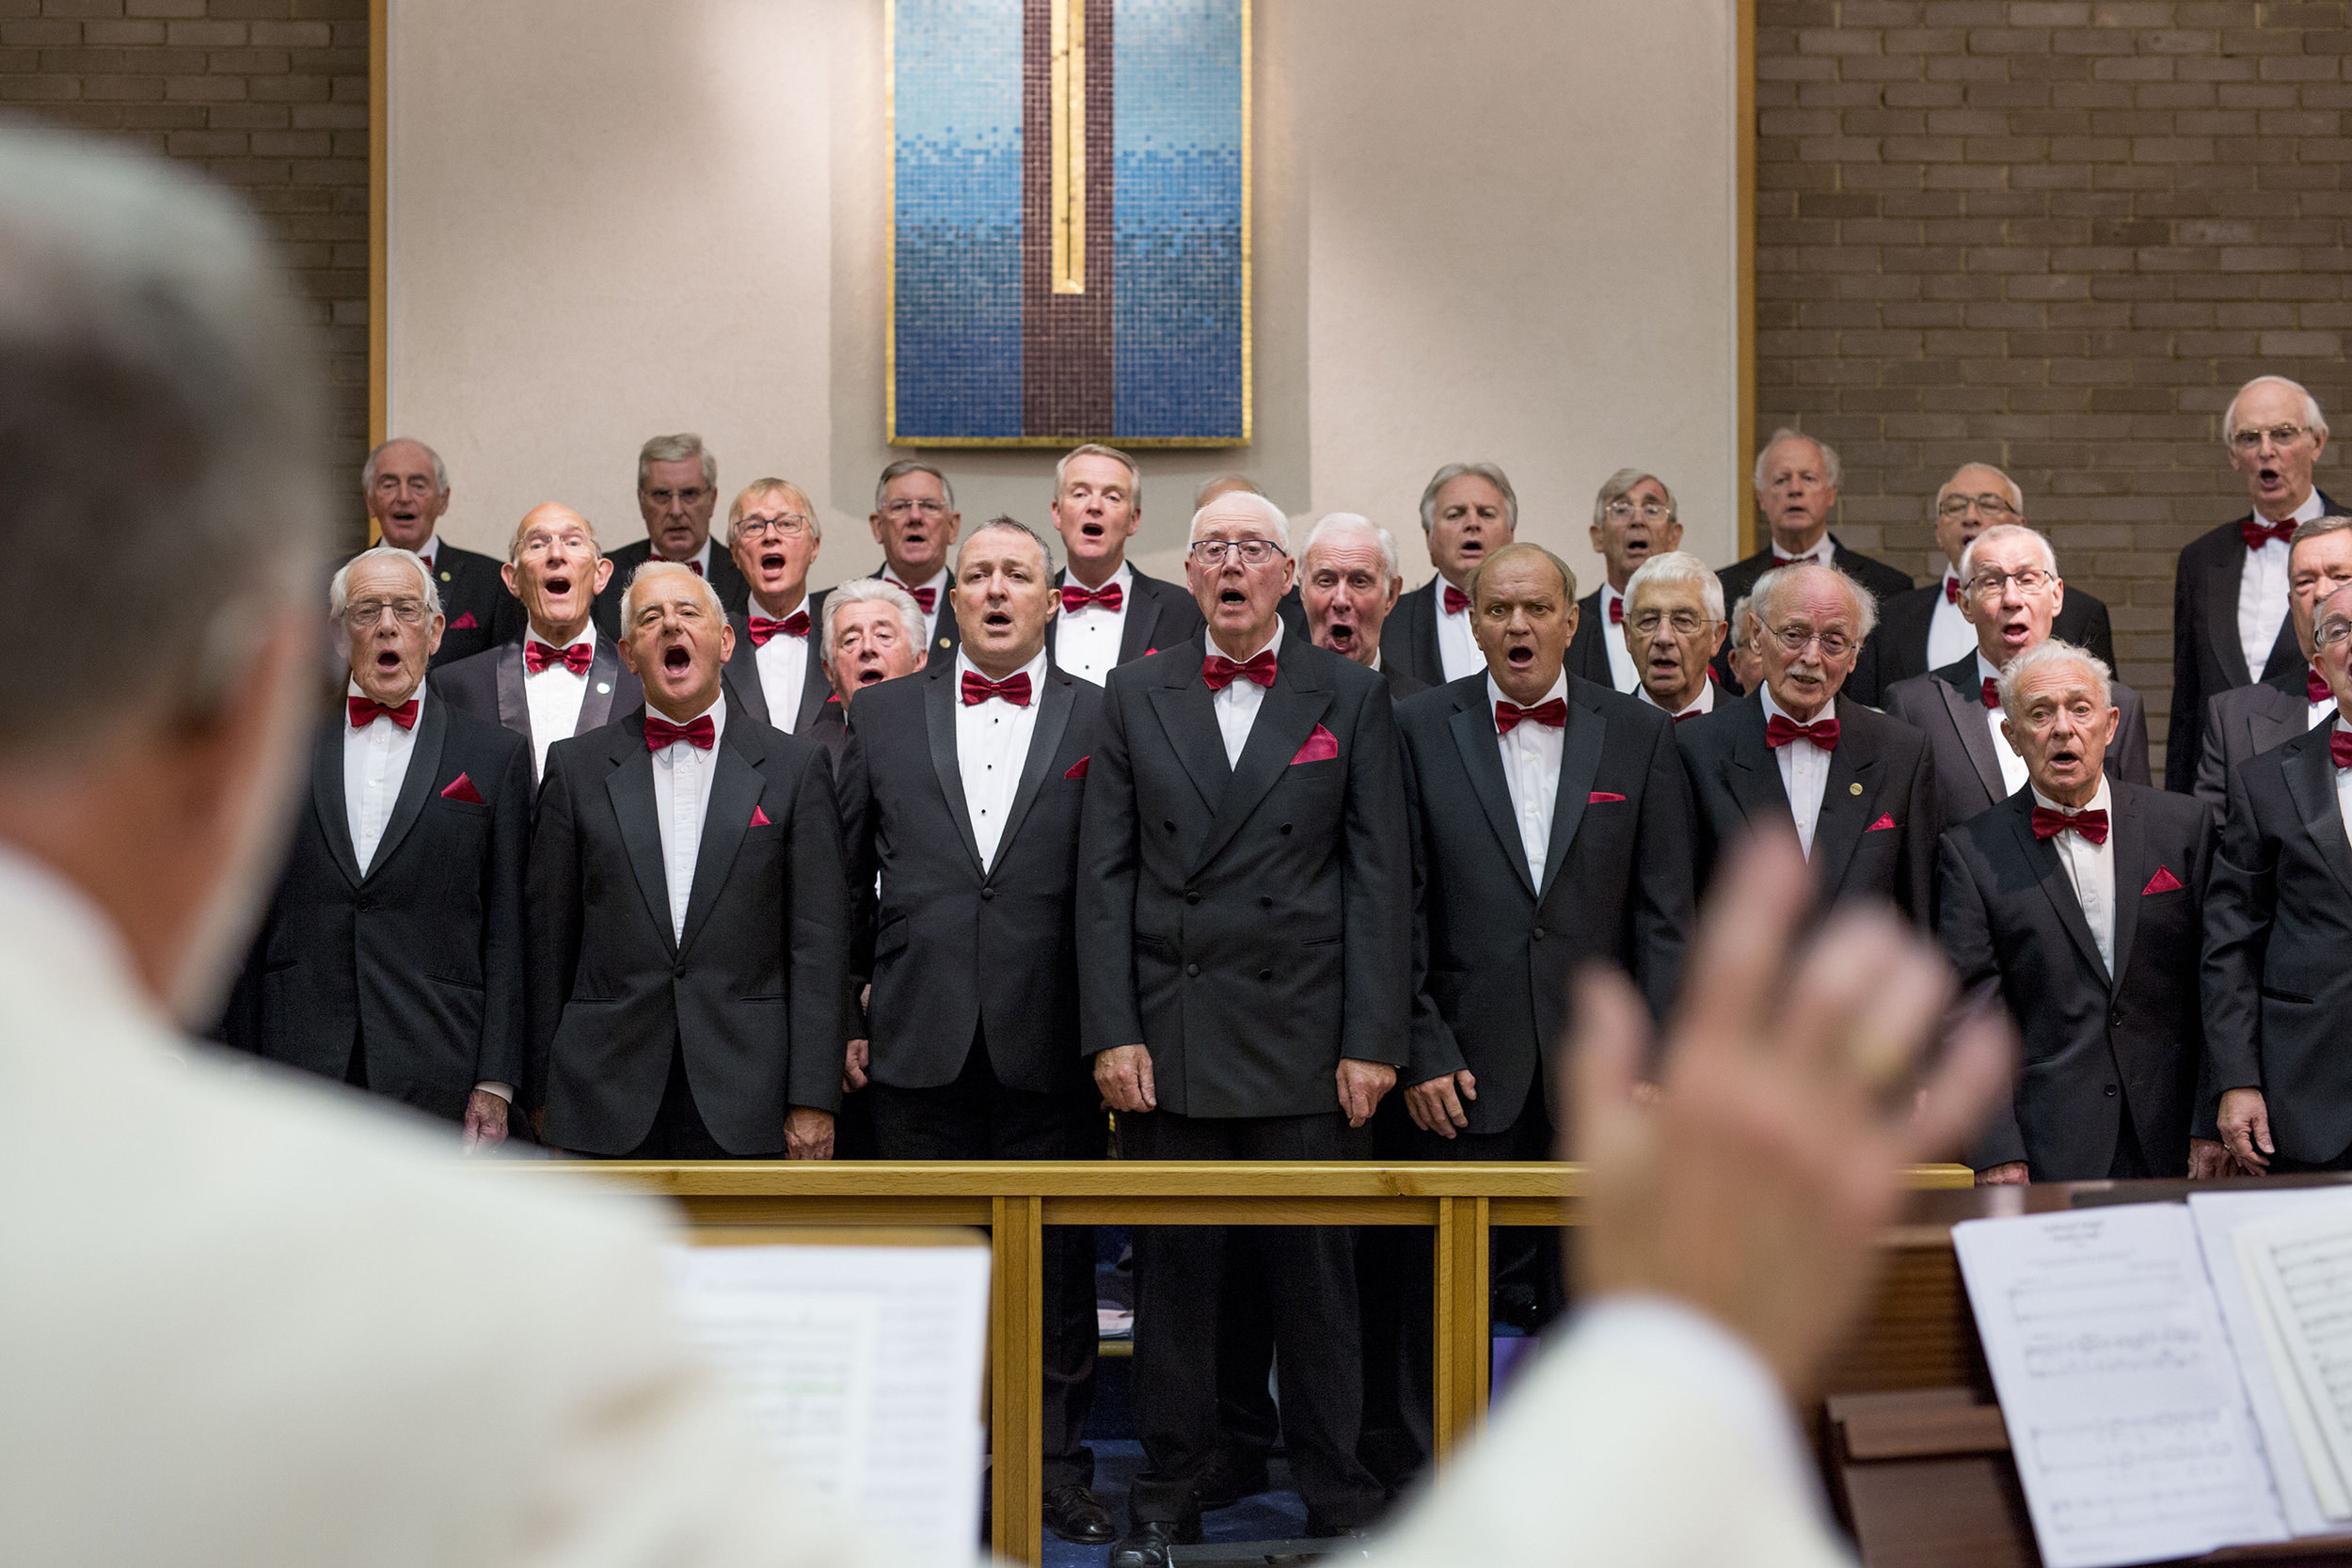 UNP Lloyds 39217 Chelmsford Male Voice Choir010.JPG